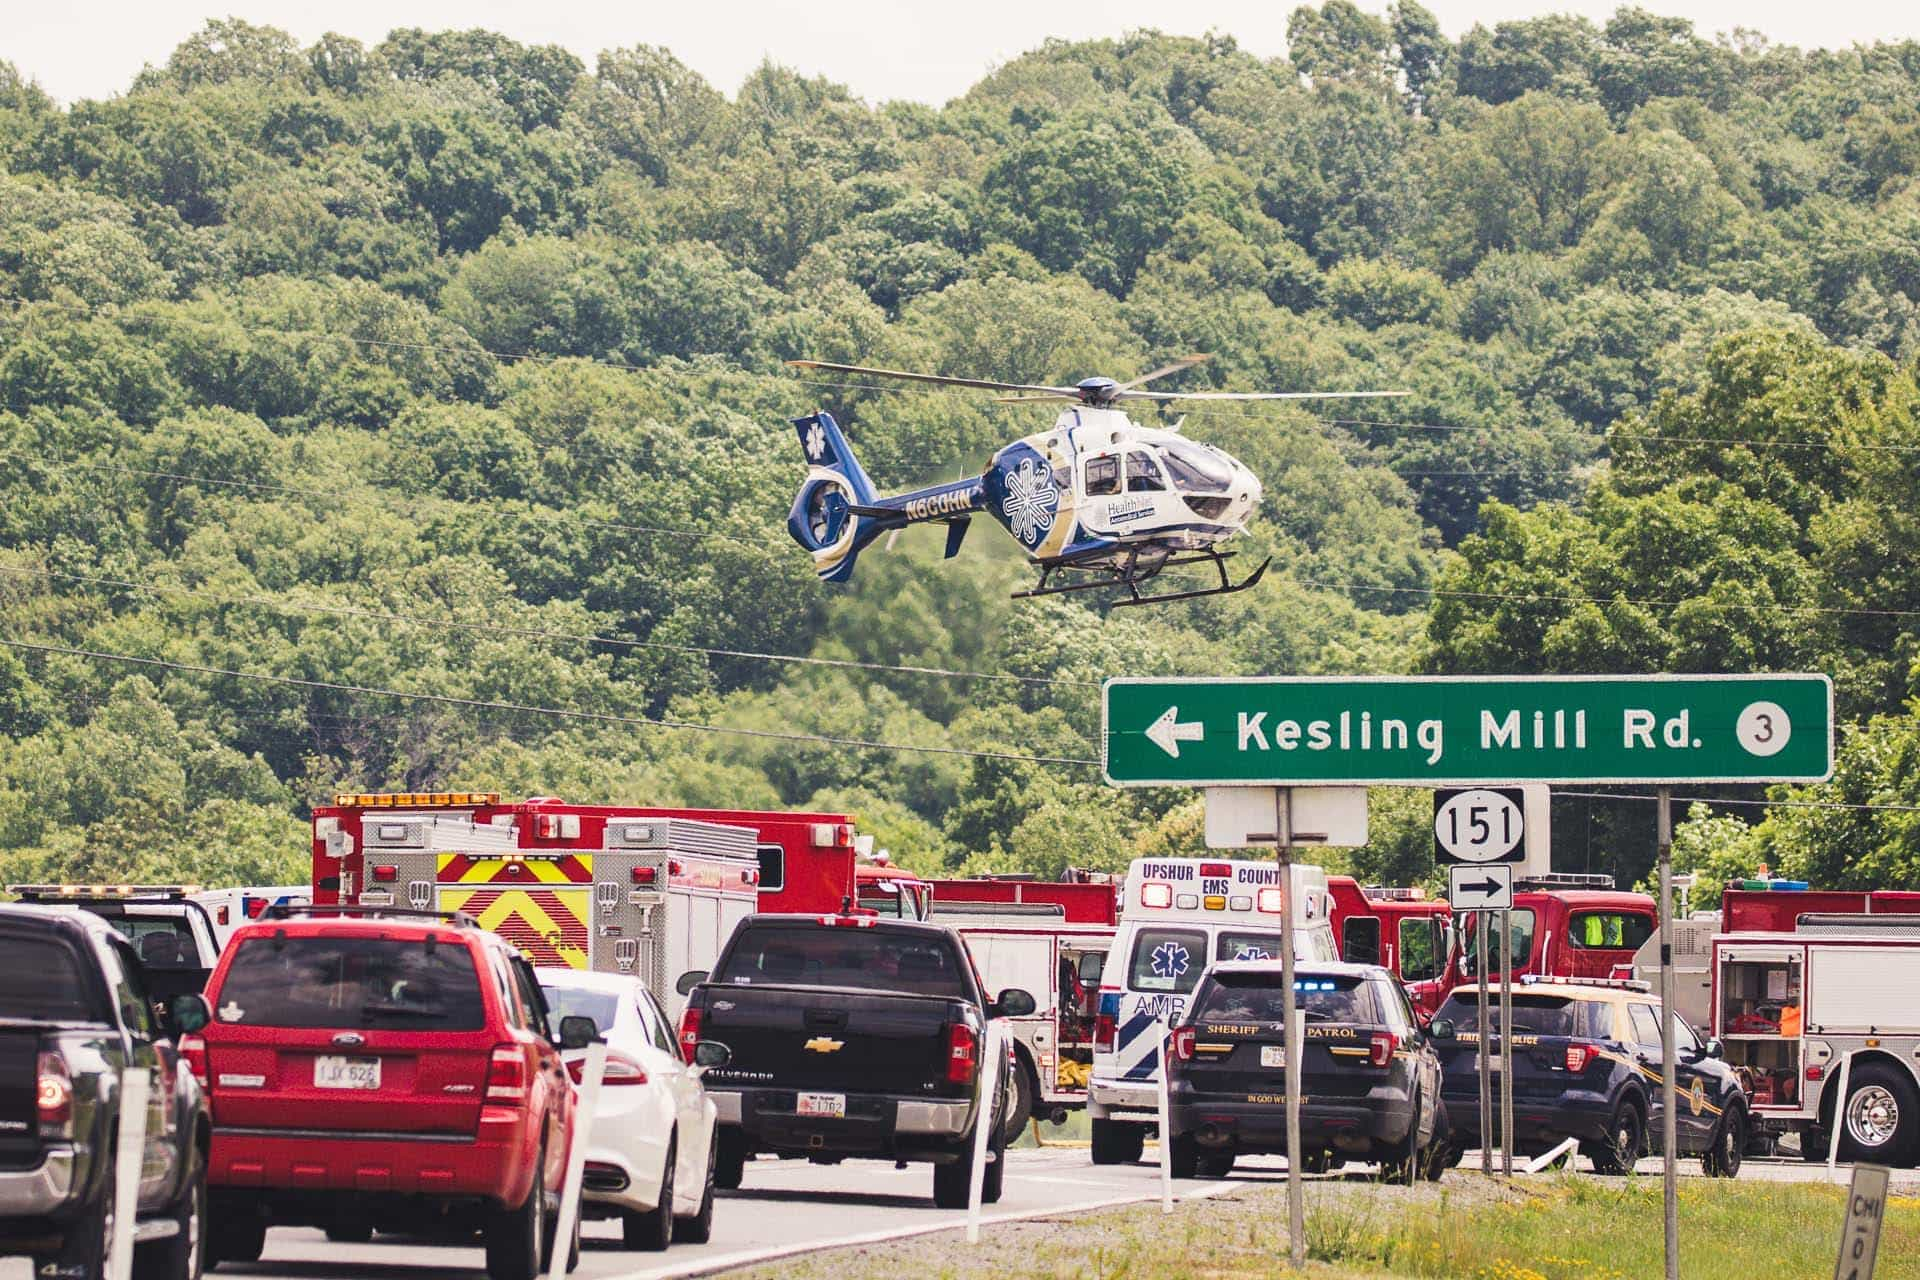 Update: Police identify woman killed in Kesling Mill wreck